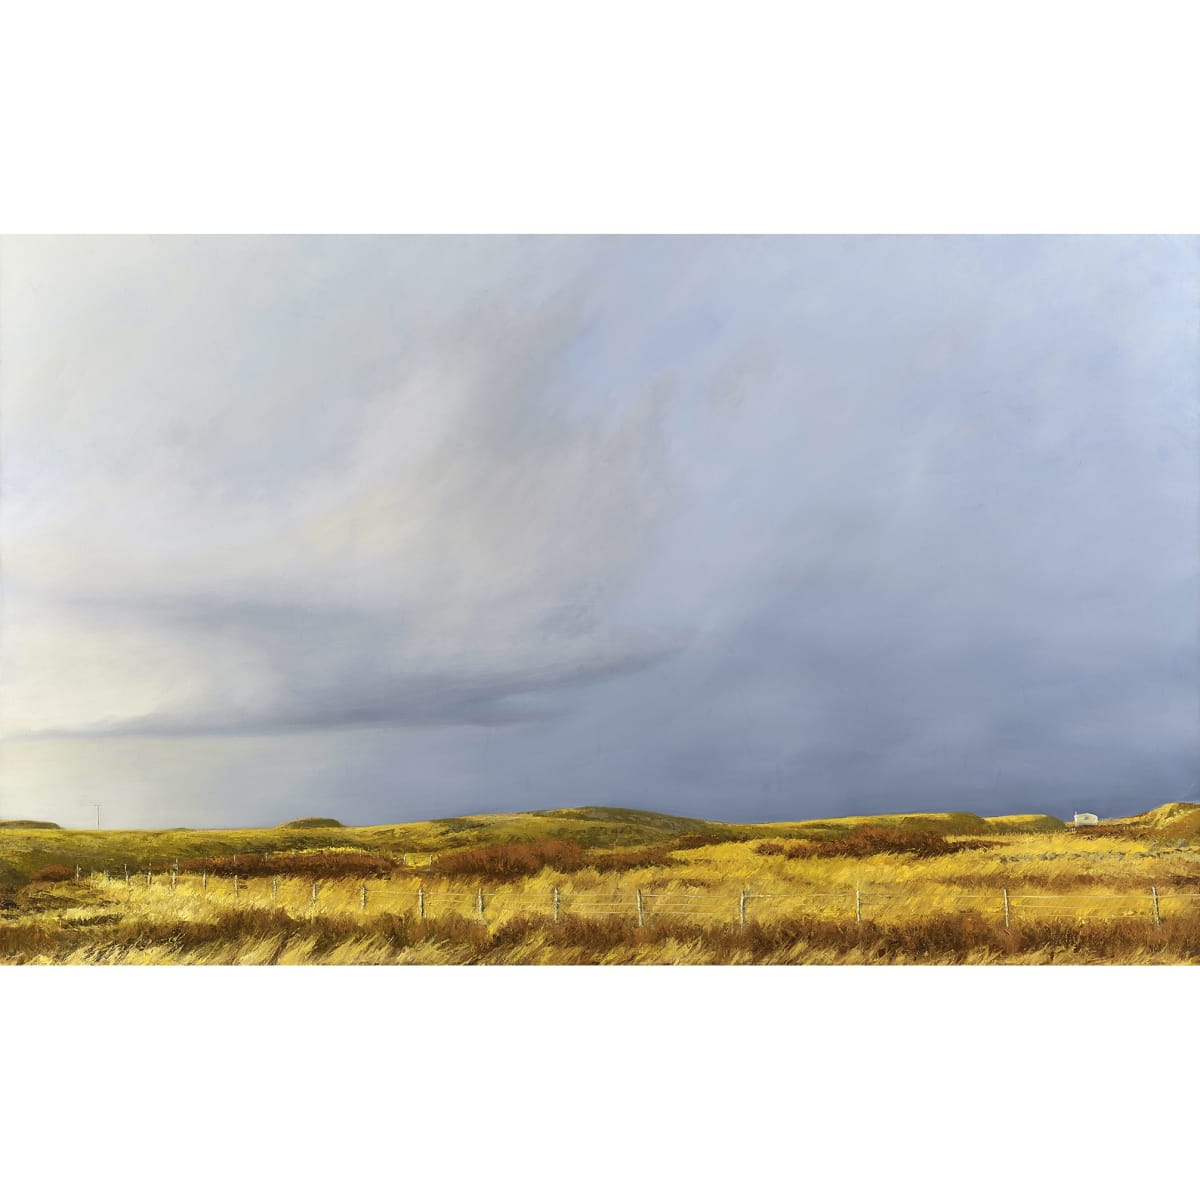 Victoria Orr Ewing Low winter sun, Ardnamurchan, 2016 initialled; titled, initialled and dated '16 verso oil on canvas 146 x 89 cm